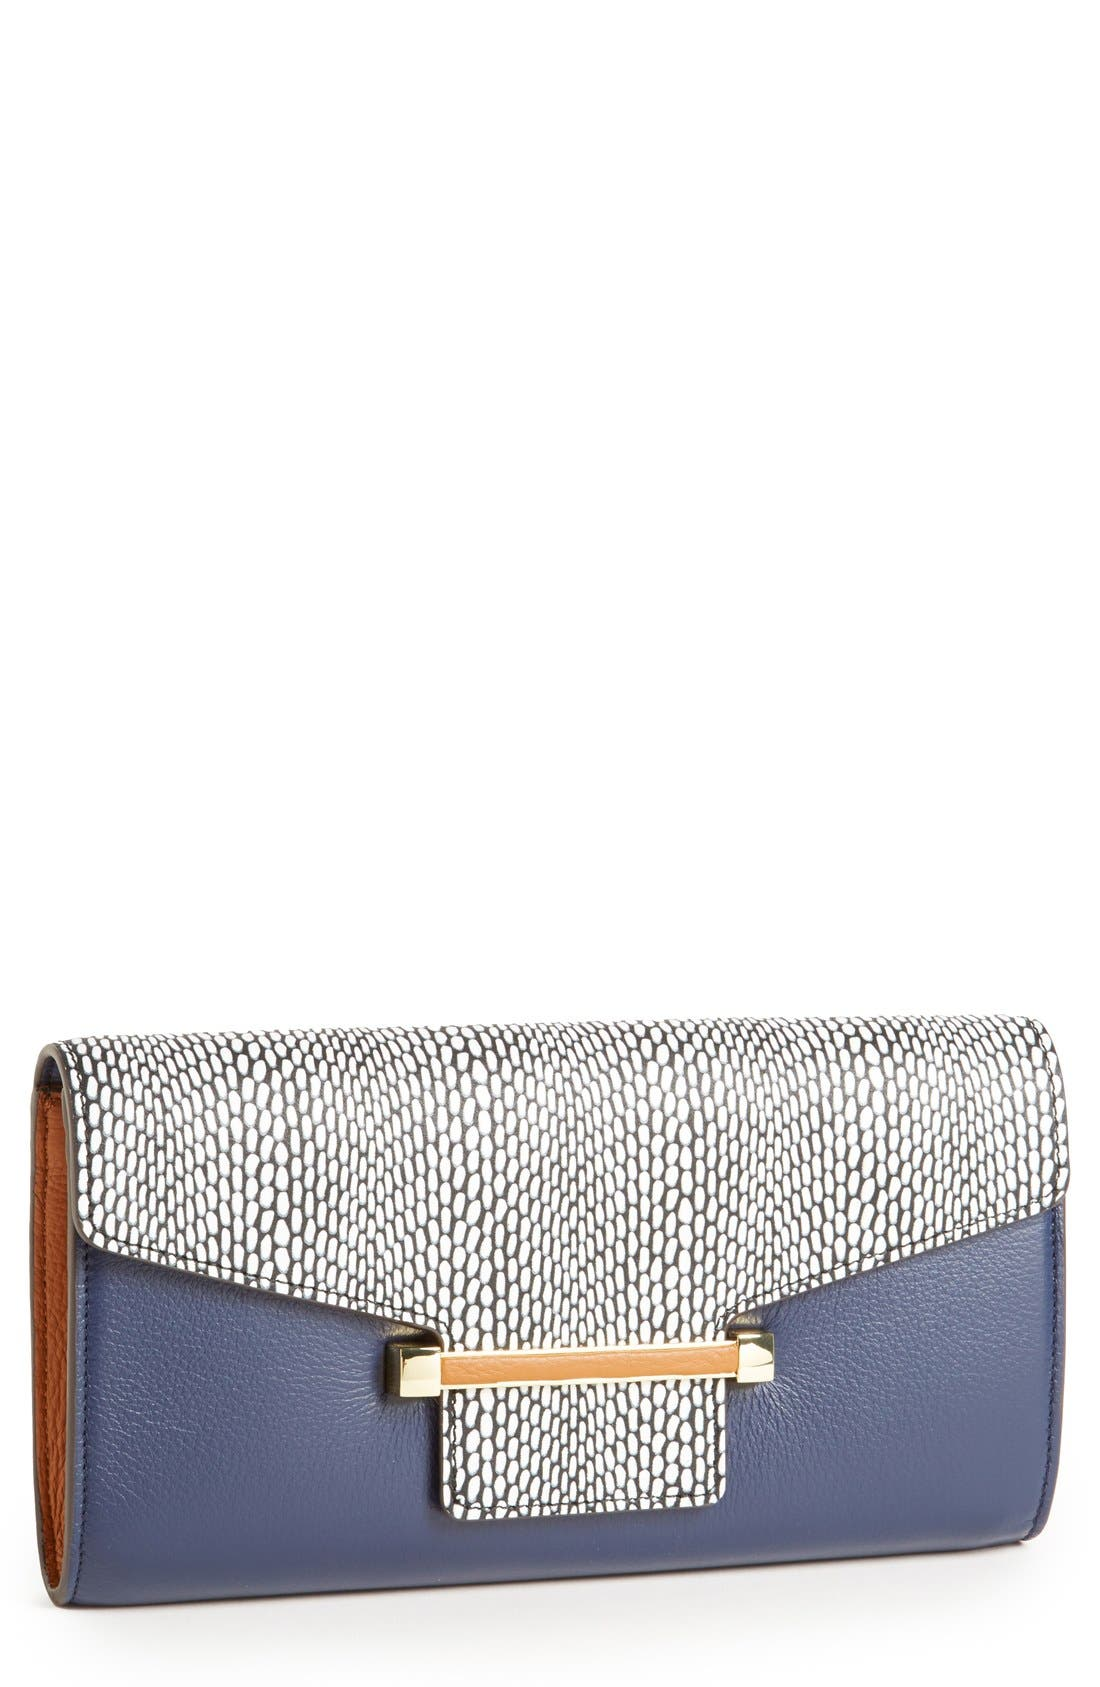 Alternate Image 1 Selected - Vince Camuto 'Julia' Clutch